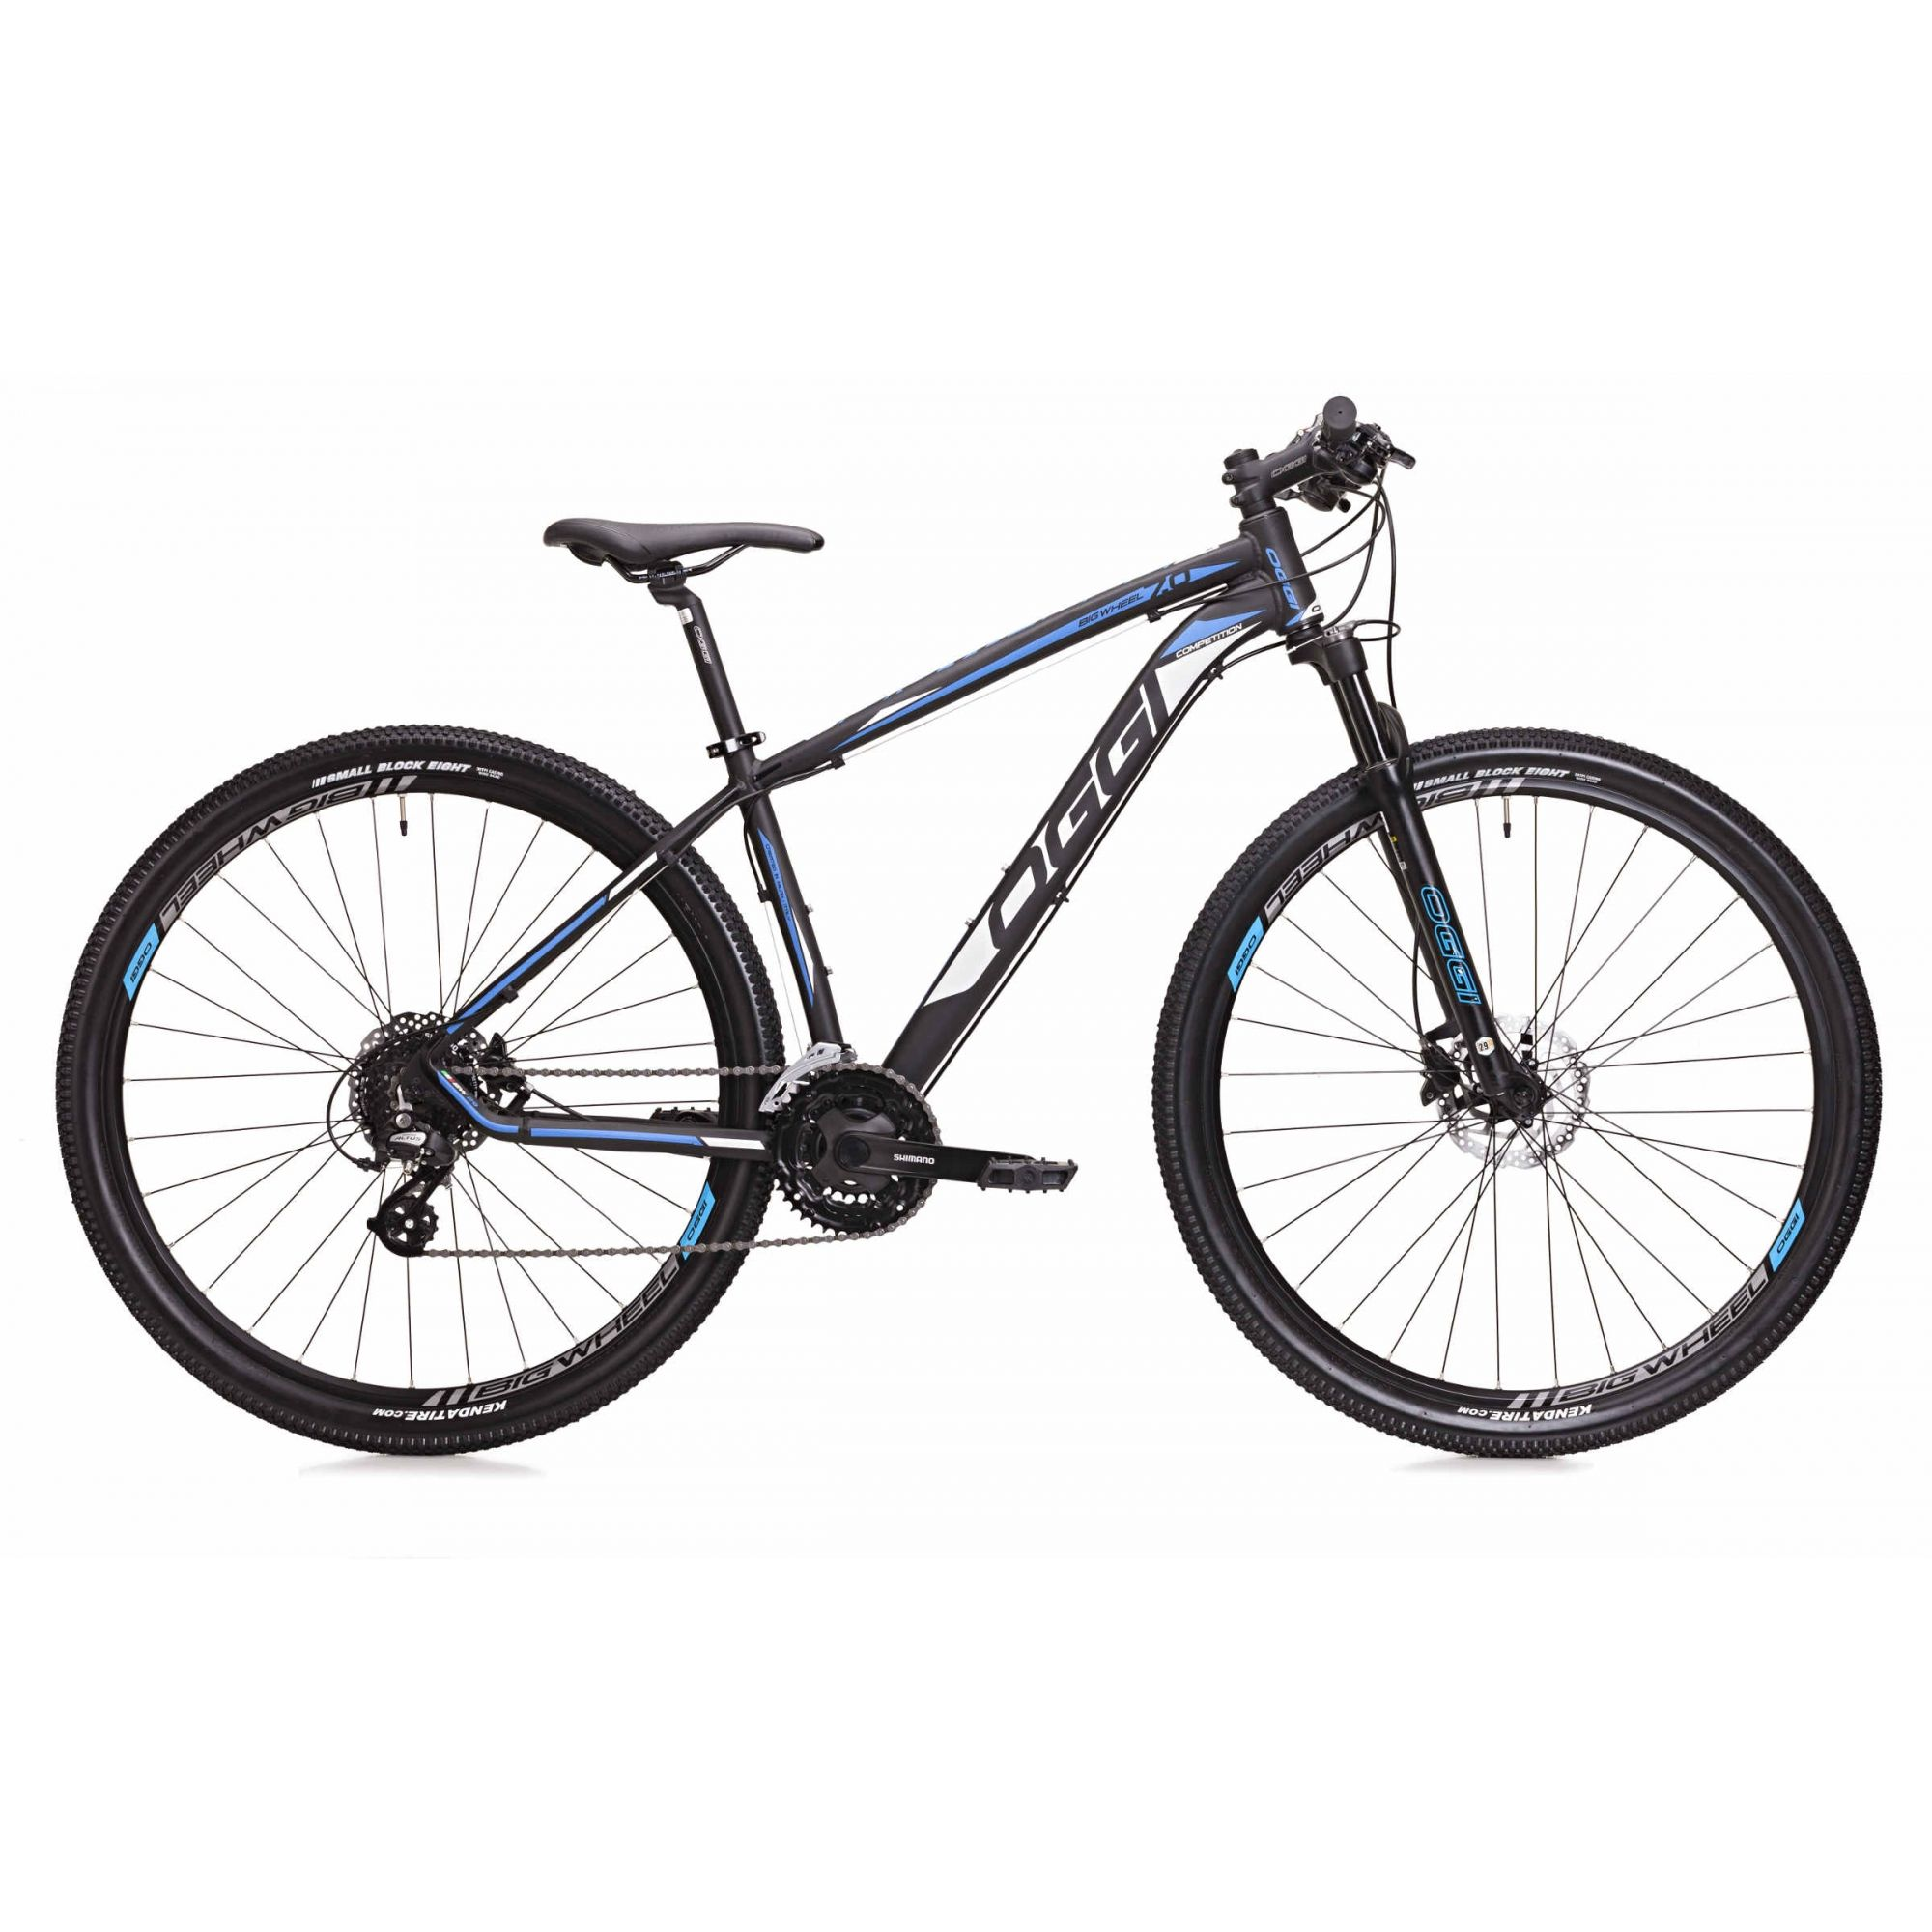 Bicicleta Oggi Big Wheel 7.0 2018 aro 29